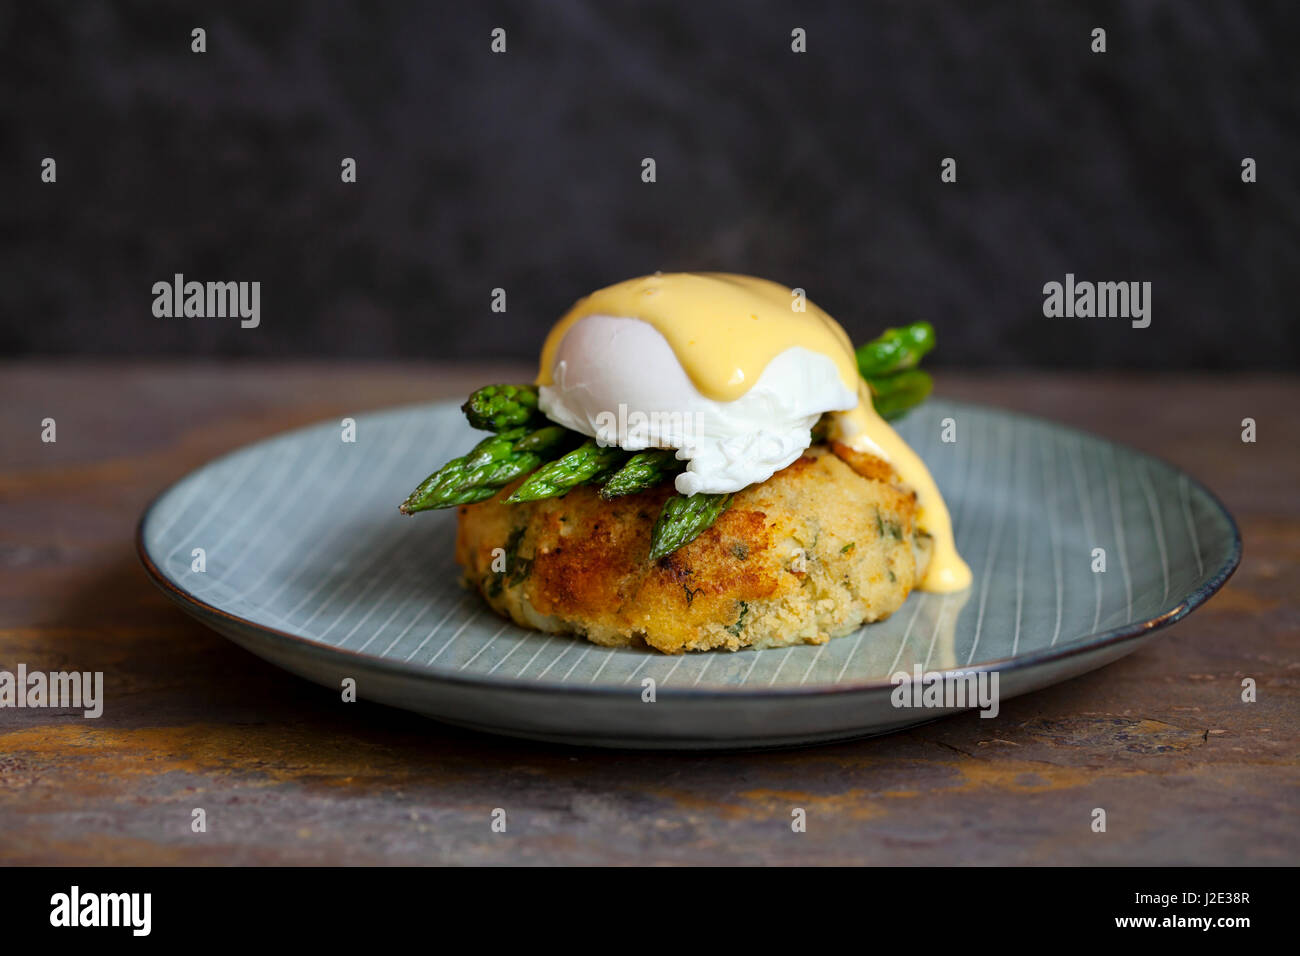 Fish cake with asparagus, poached egg and hollandaise sauce - Stock Image